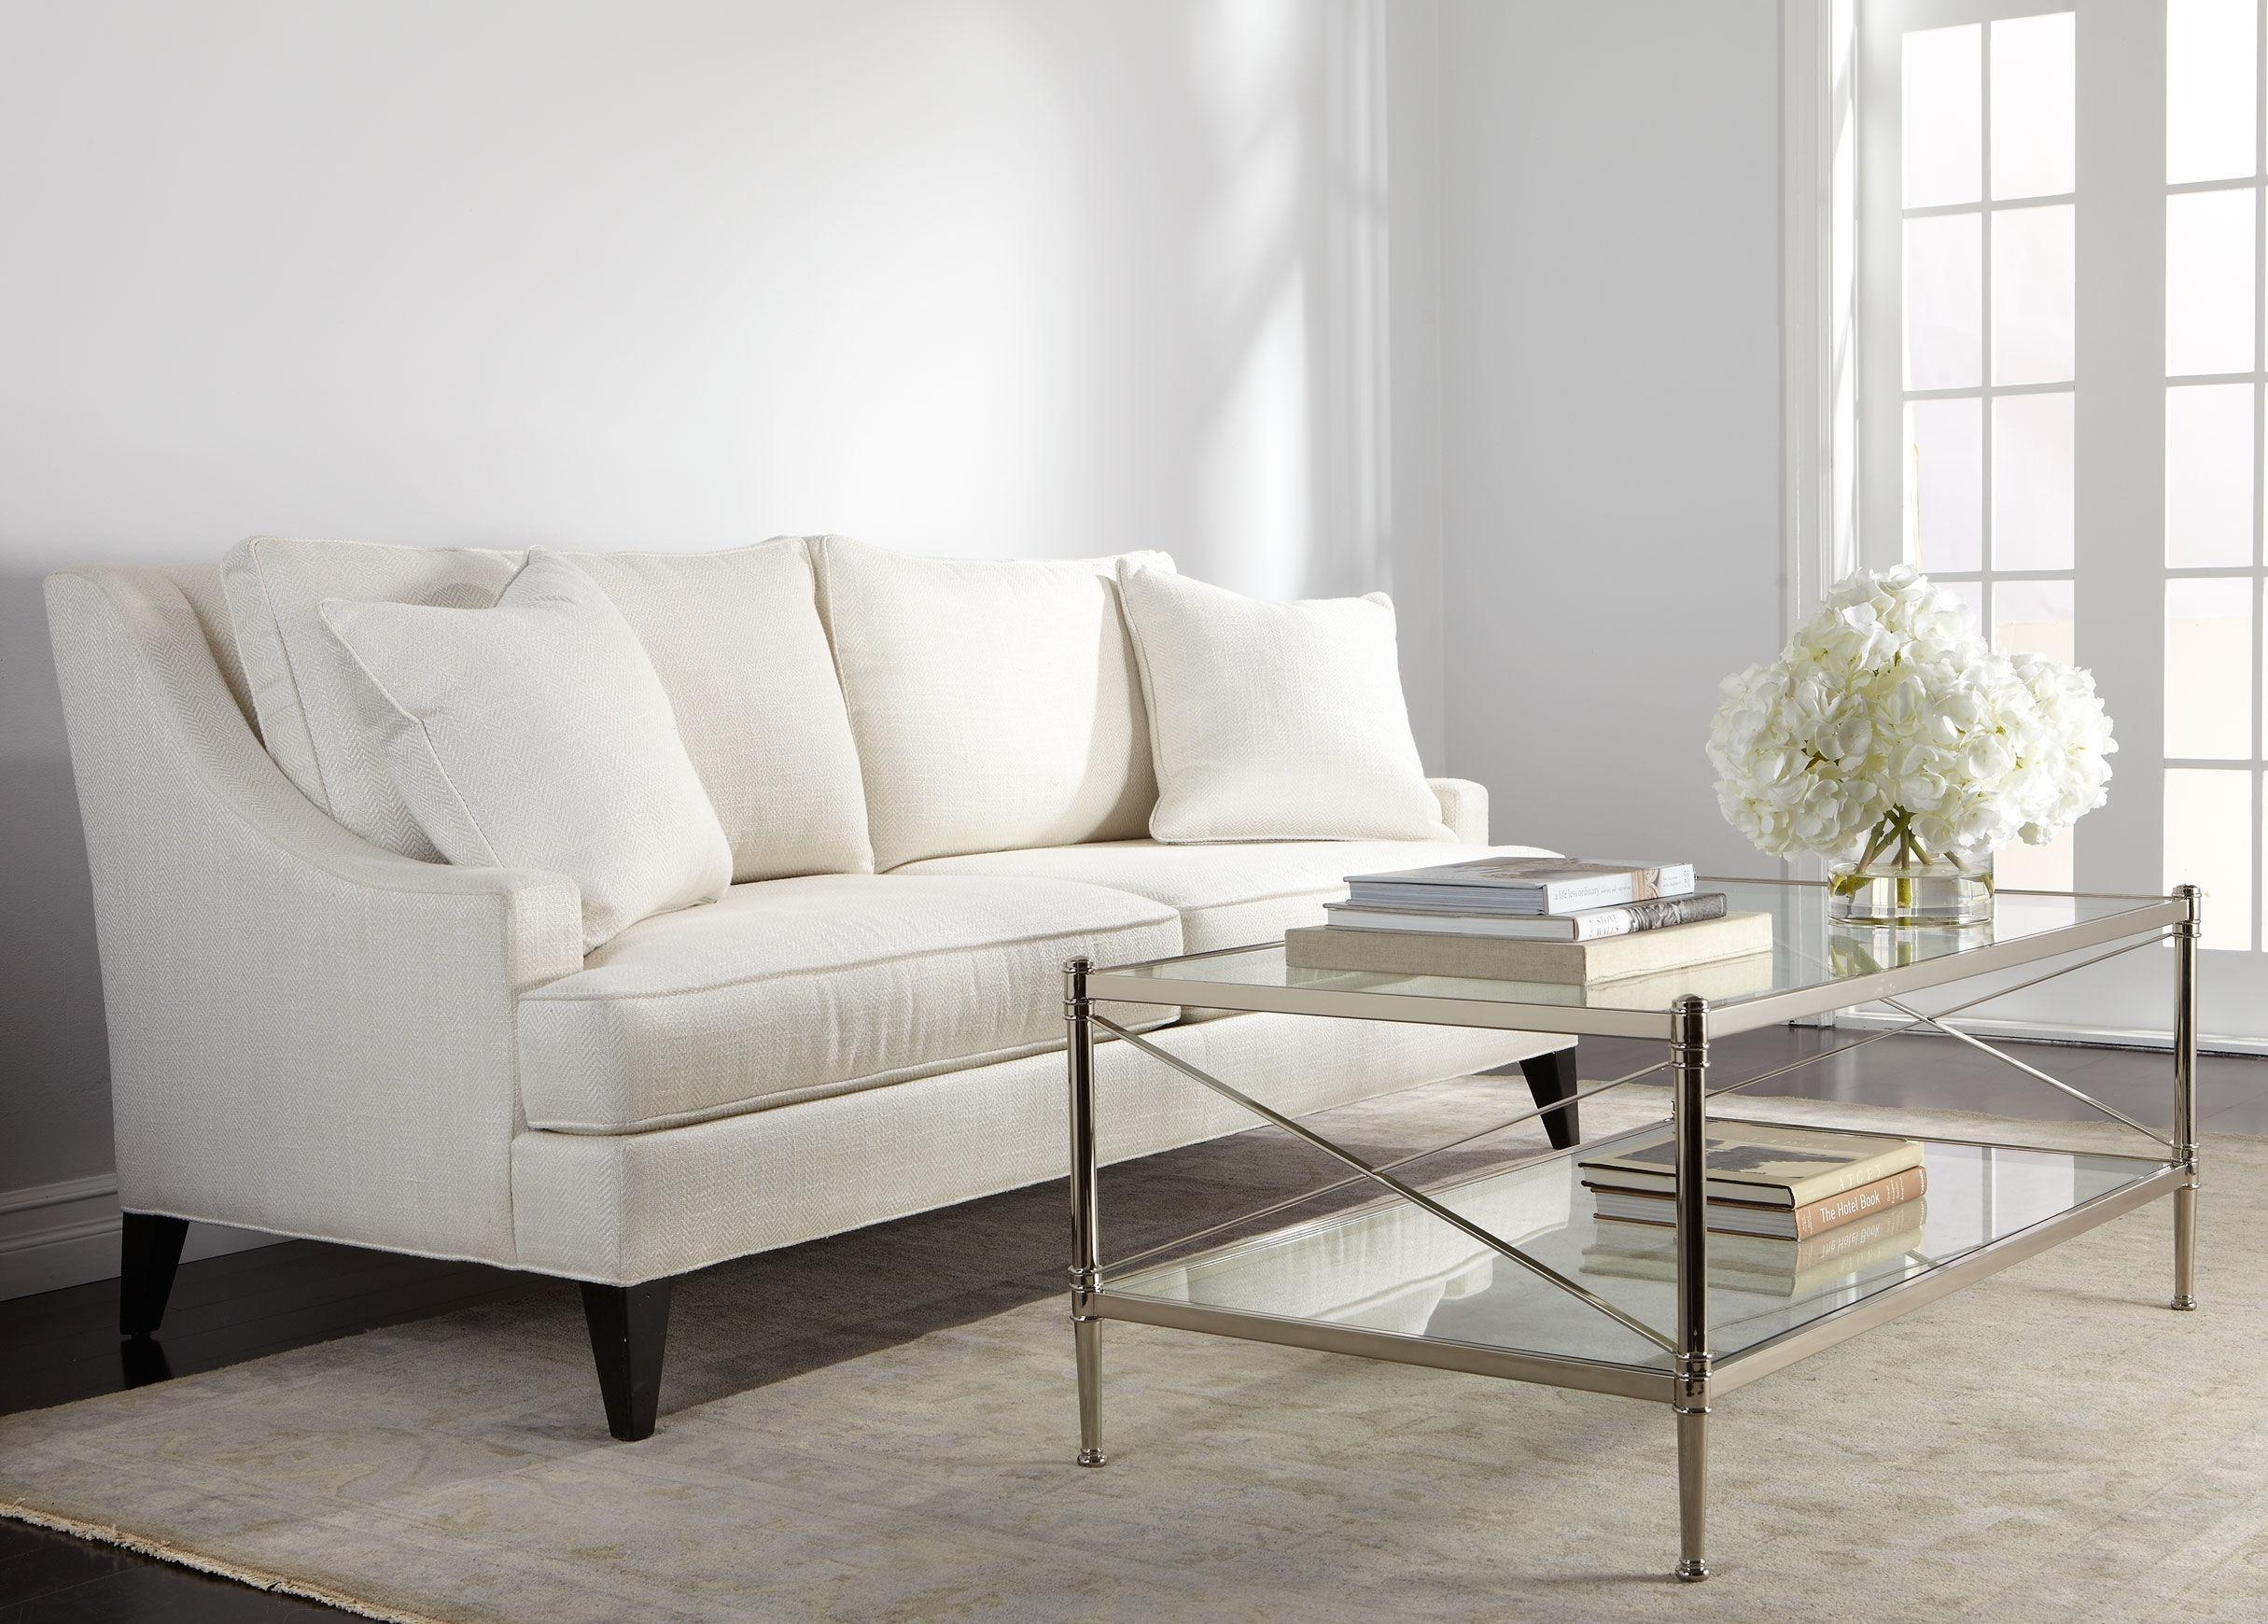 chadwick sofa ethan allen reviews what to put behind on wall 20 best collection of sofas and chairs | ...